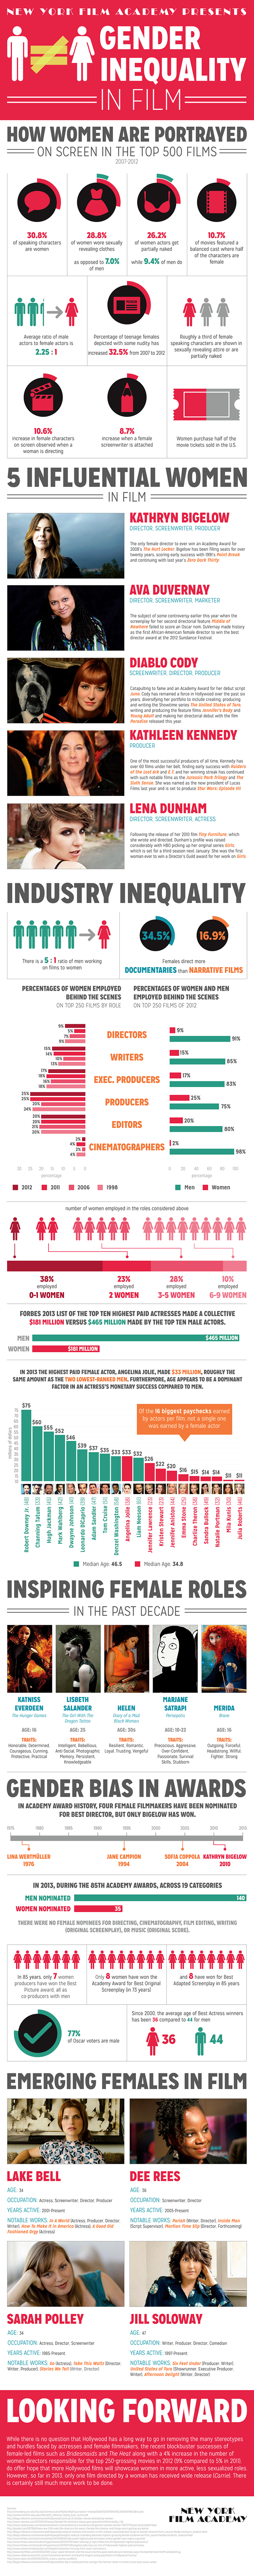 gender inequality in film an infographic new york film academy s gender inequality in film infographic